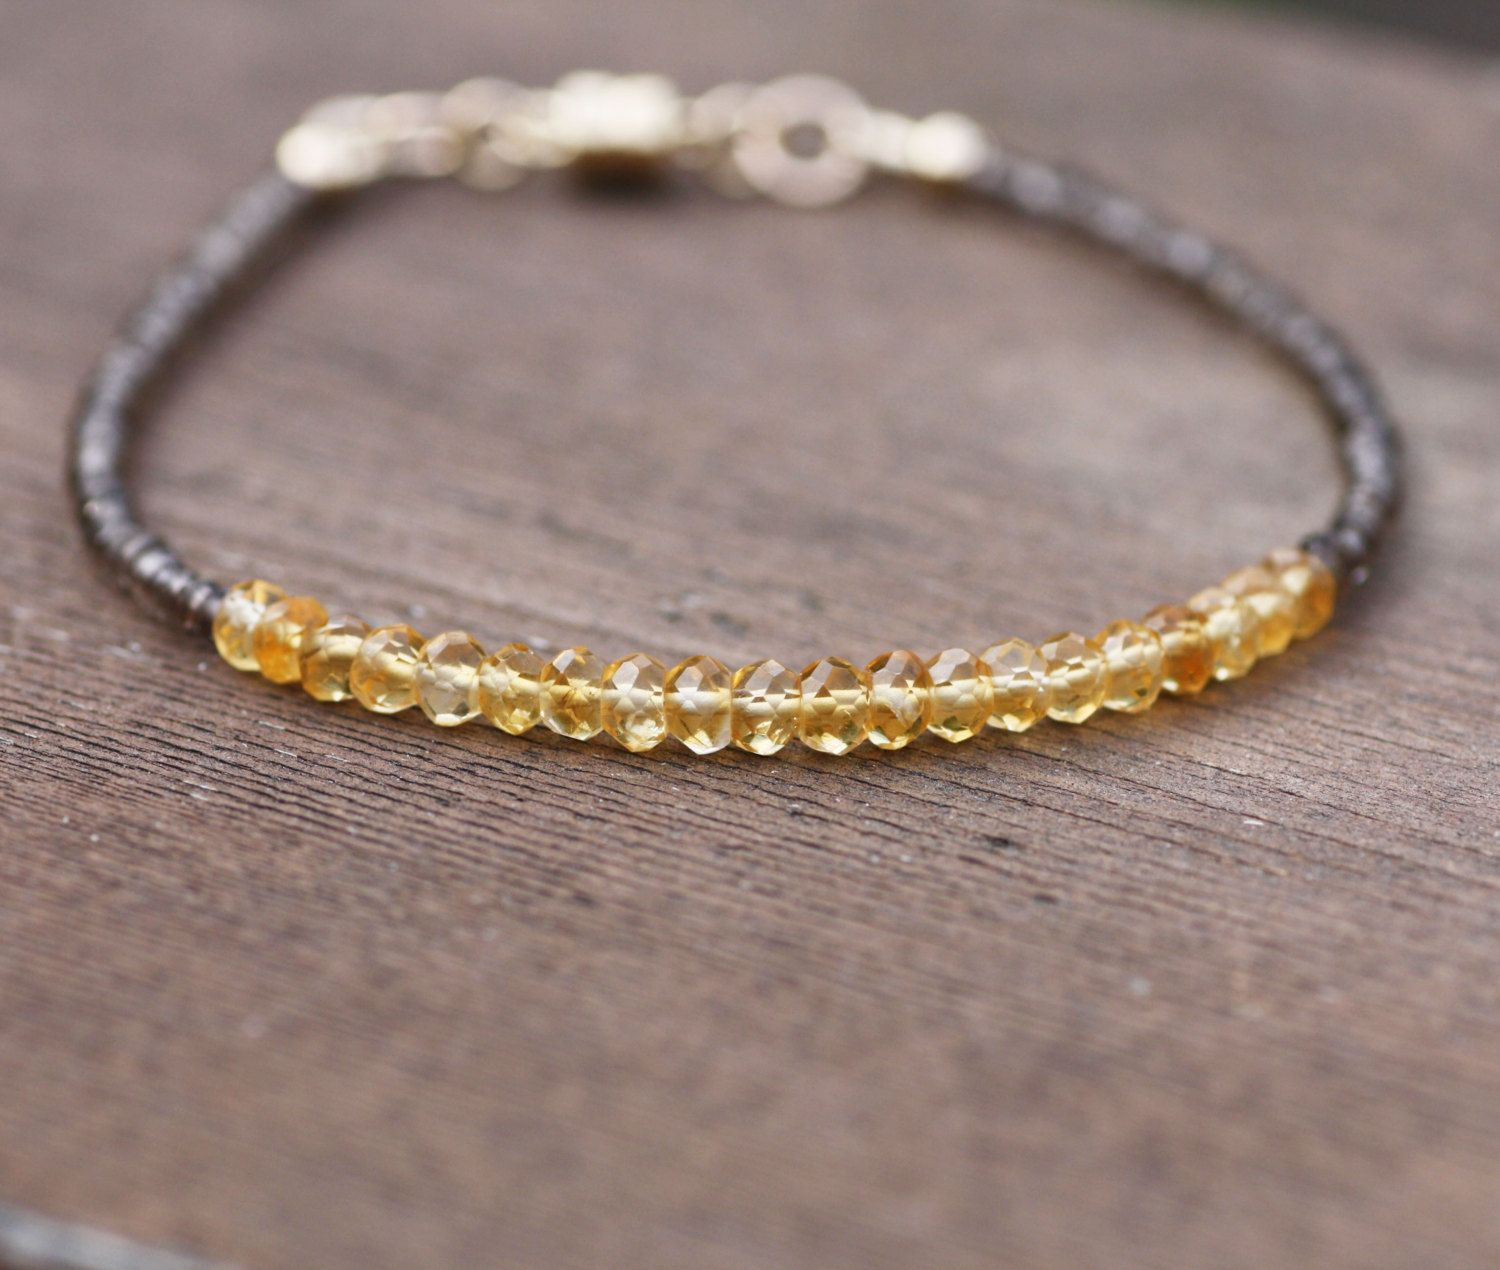 14K Solid Gold Necklace with Briolette Citrine